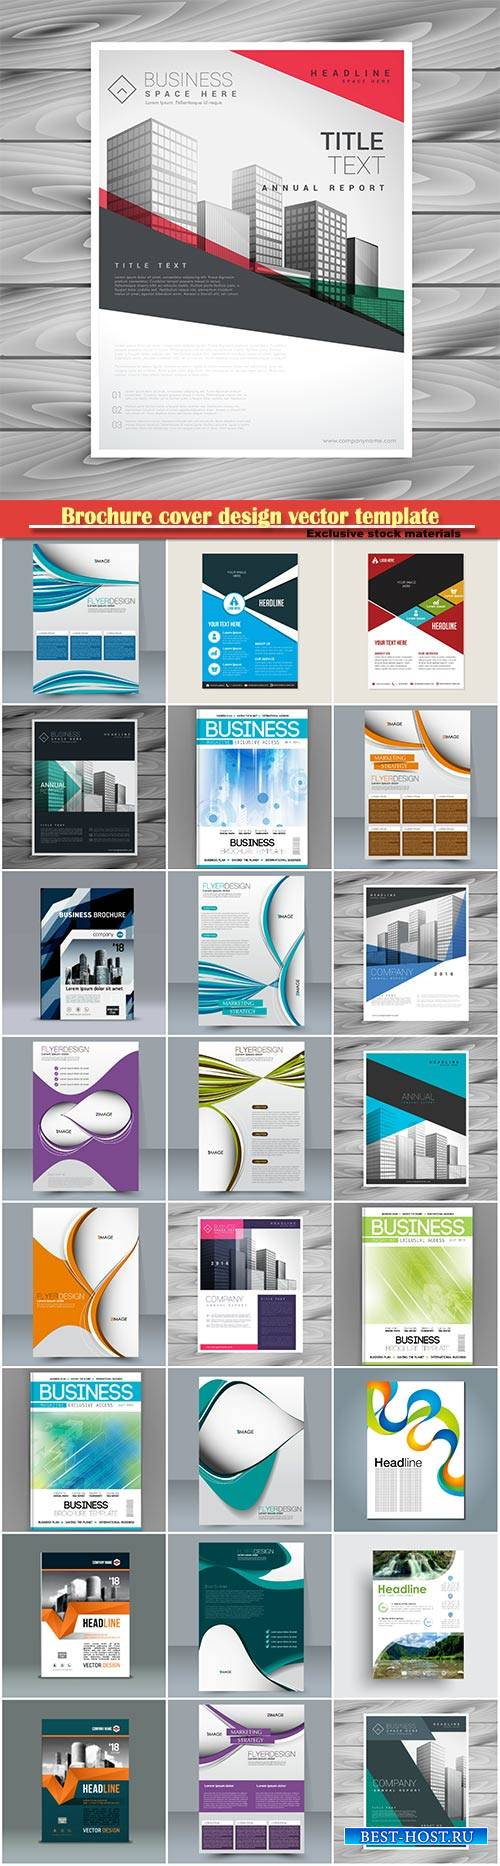 Brochure cover design vector template # 19